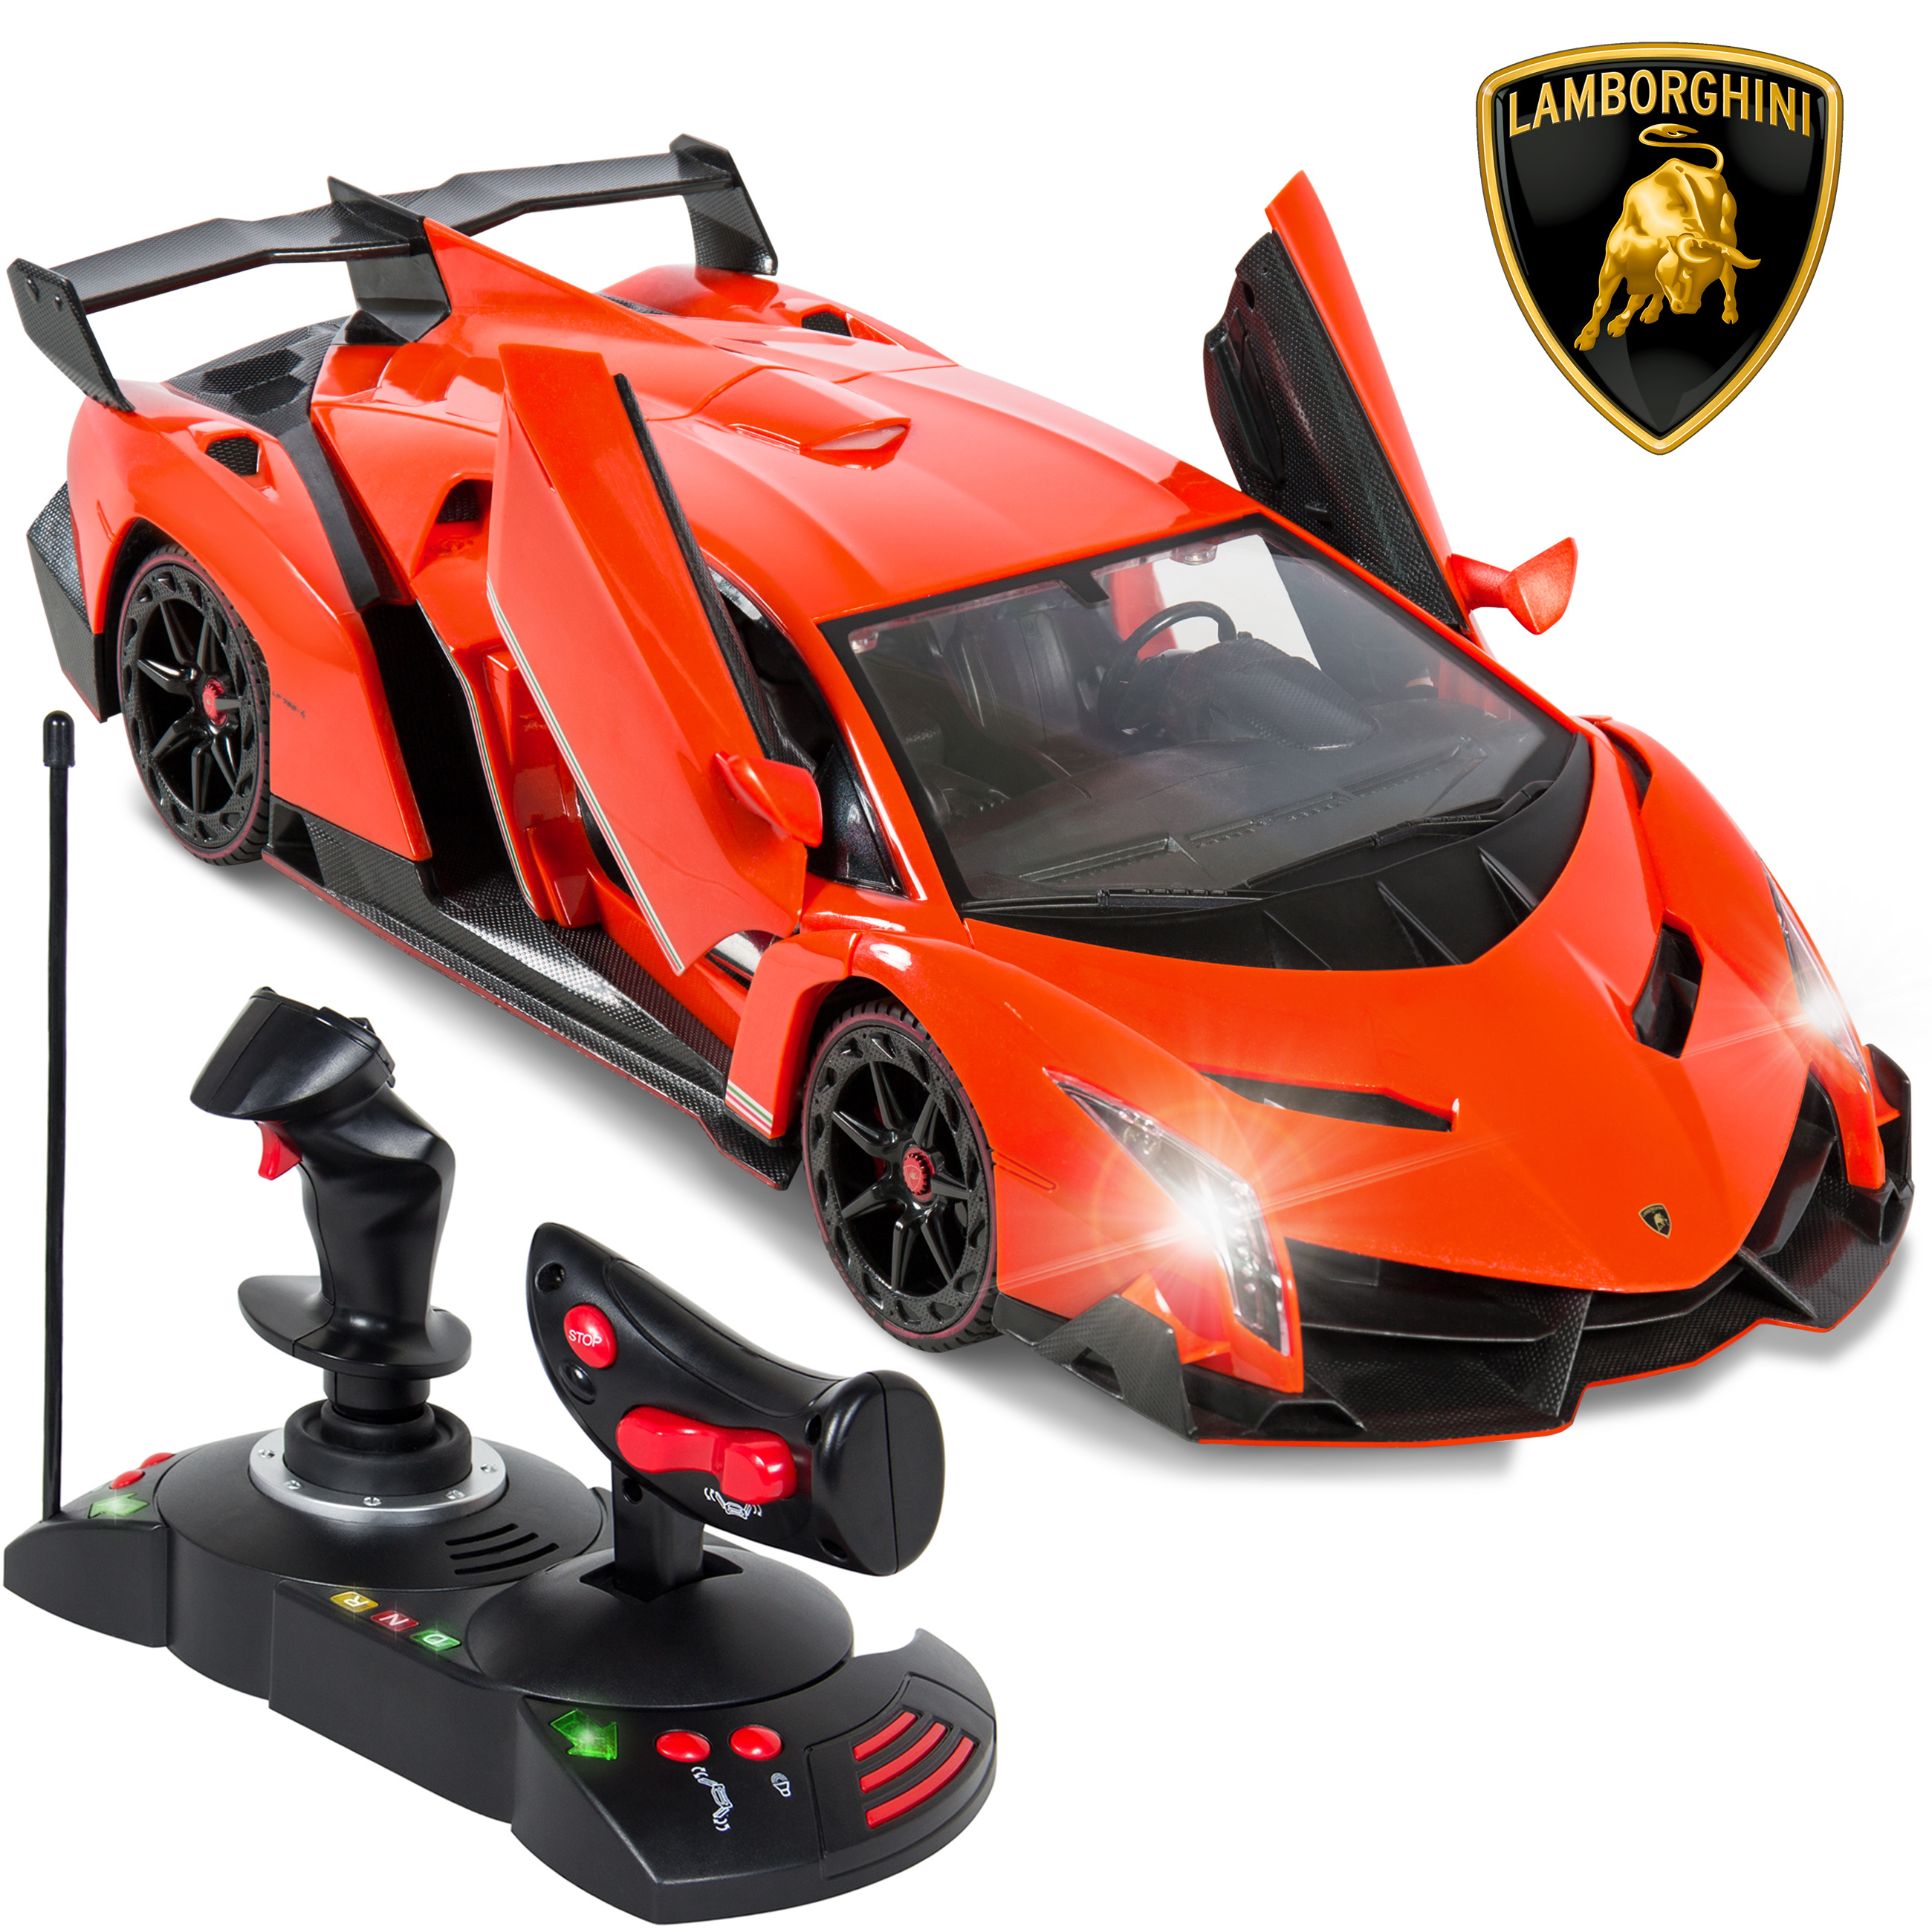 Best Choice Products 1 14 Scale RC Lamborghini Veneno Gravity Sensor Radio Remote Control Car (Orange) by Best Choice Products